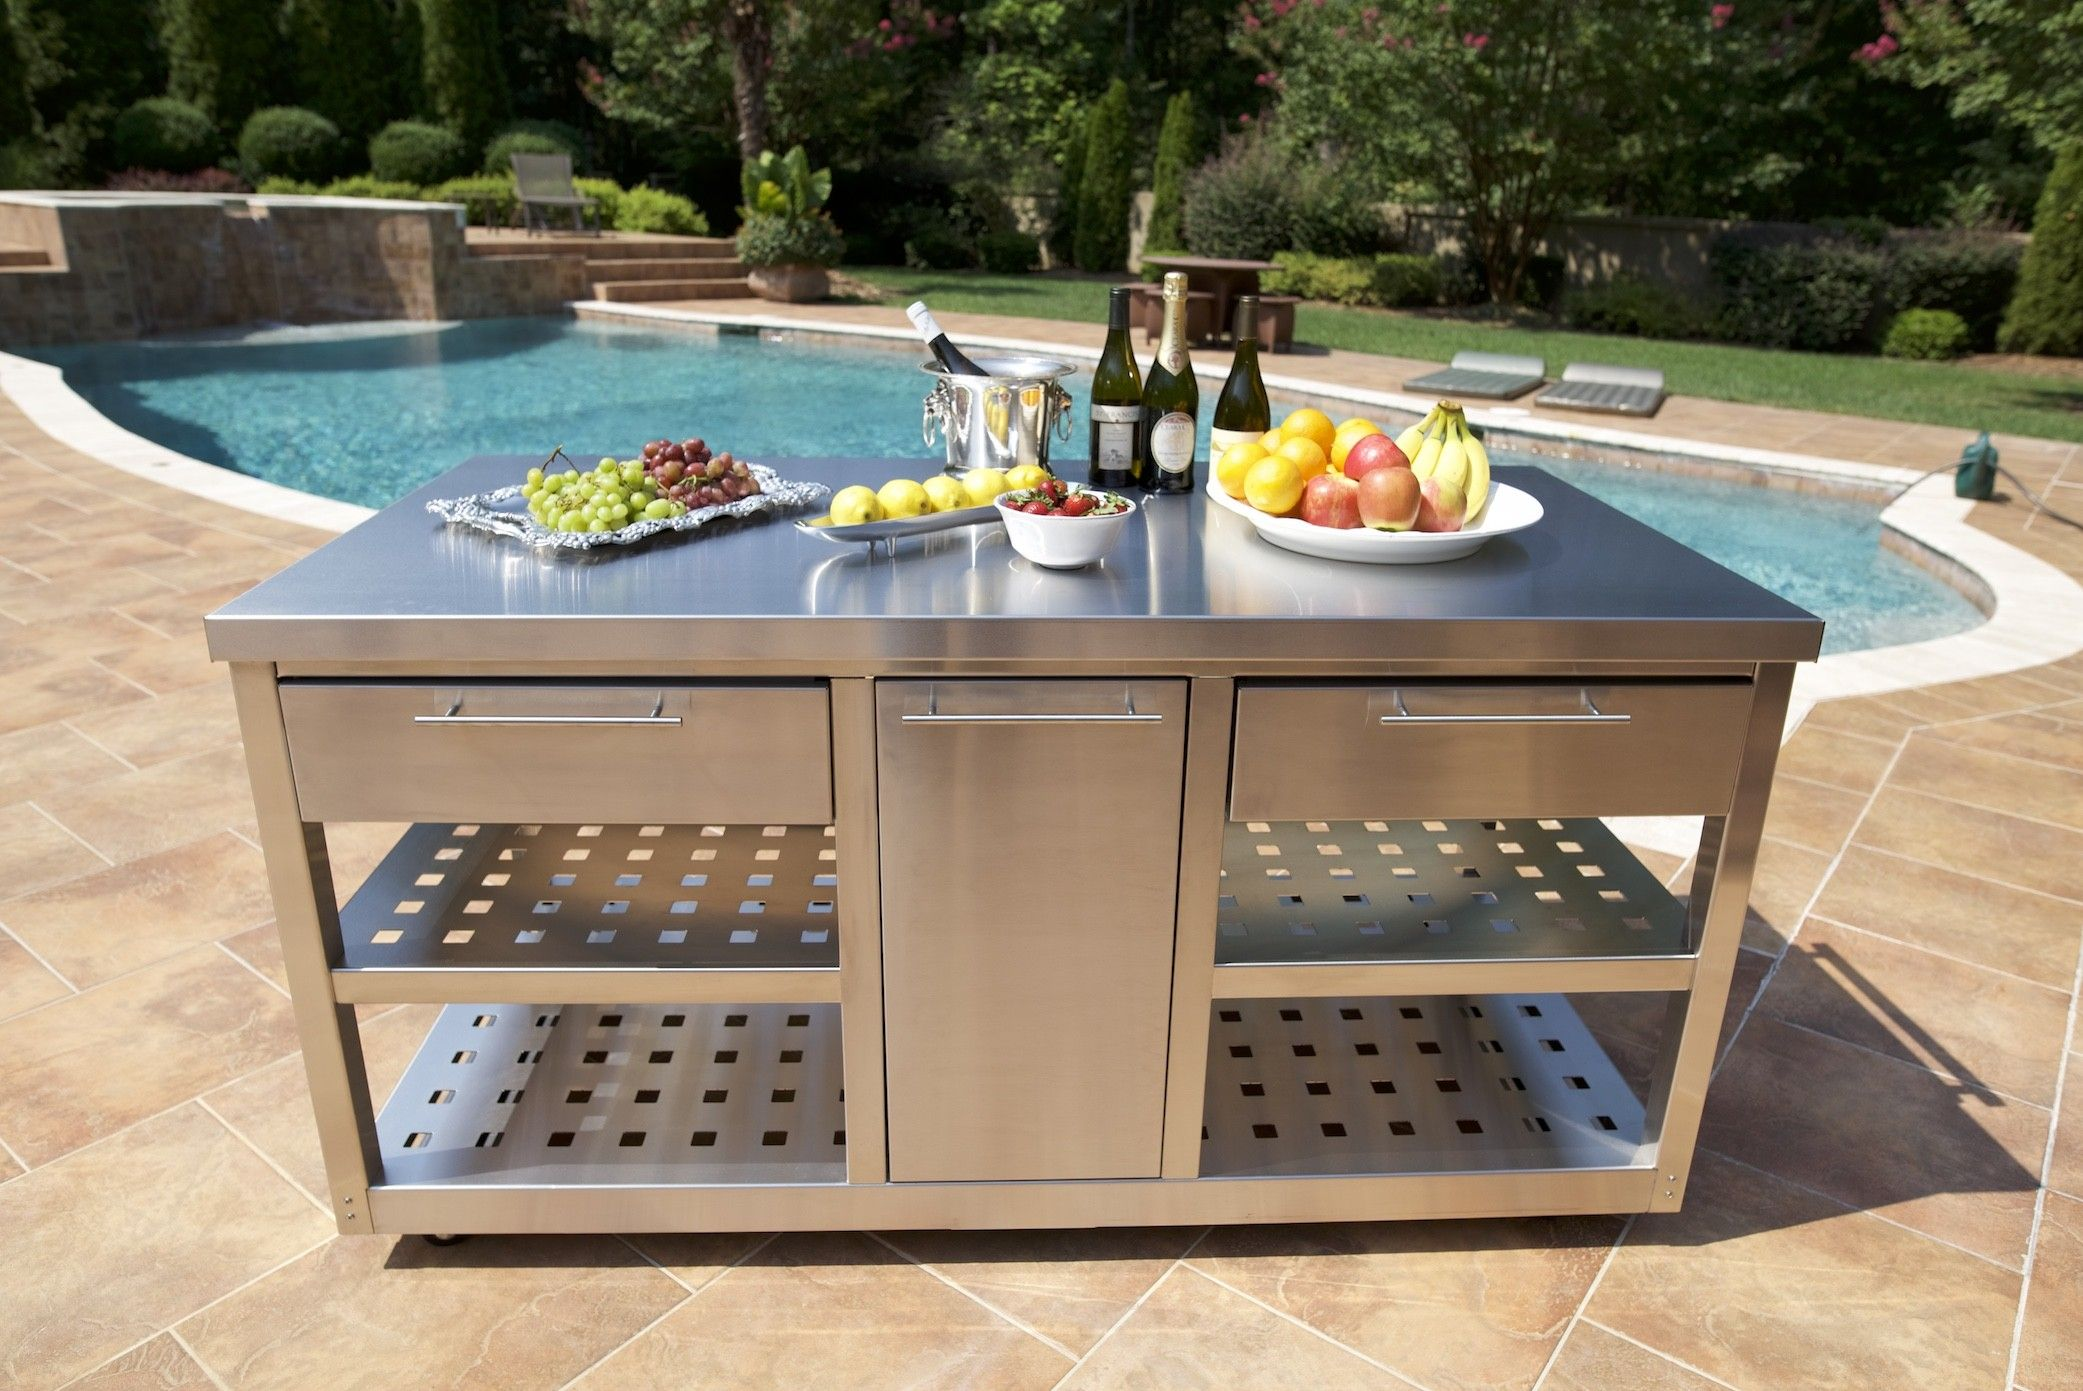 outdoor mobile chef s station stainless steel john michael outdoor kitchens 5000 kitchen on outdoor kitchen on wheels id=59441